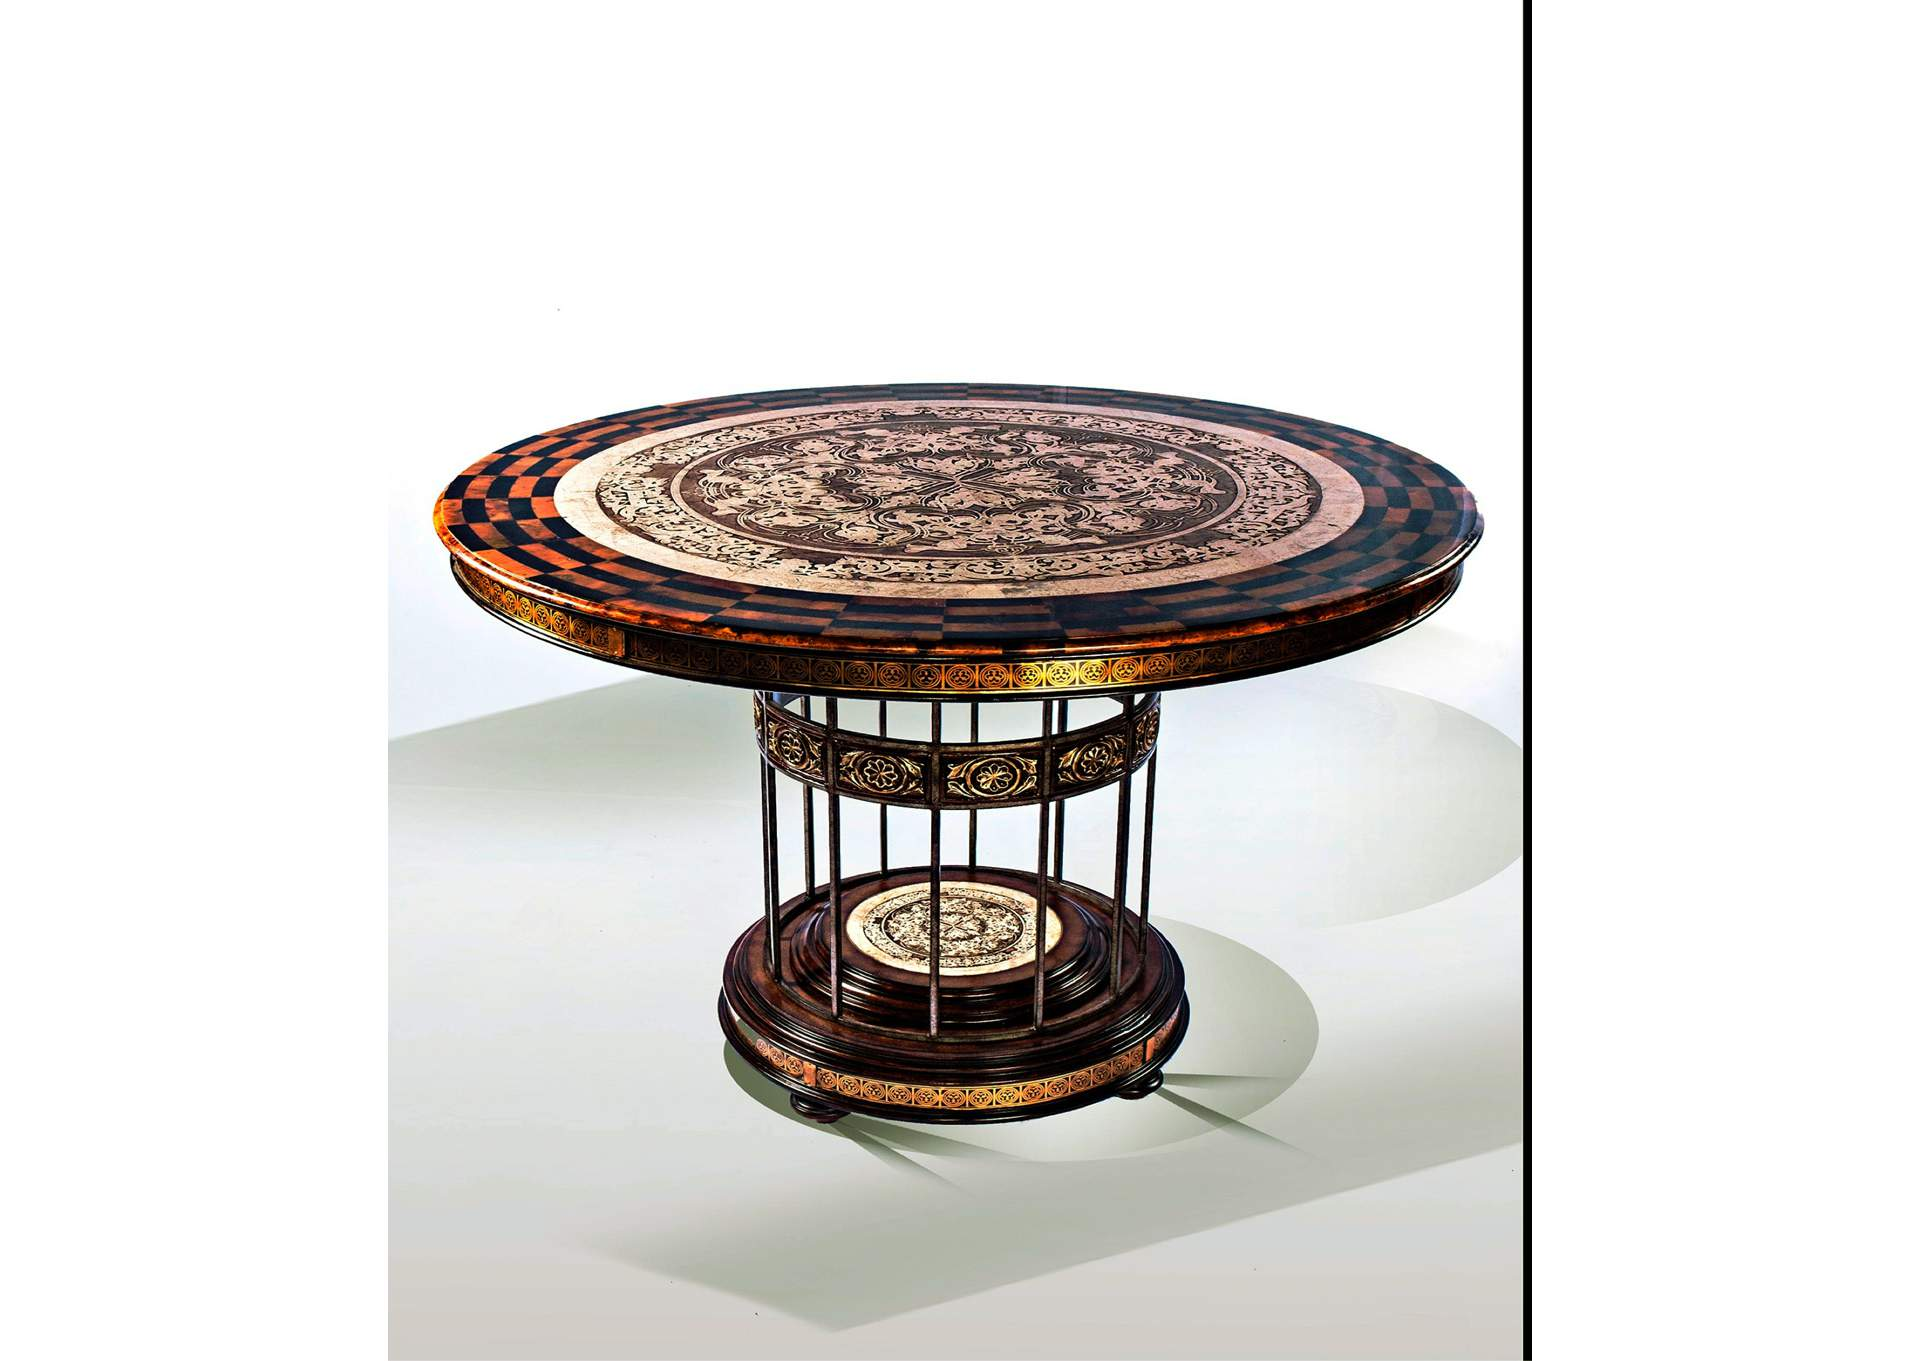 nulook furniture discoveries round stone etched entry table w metal base